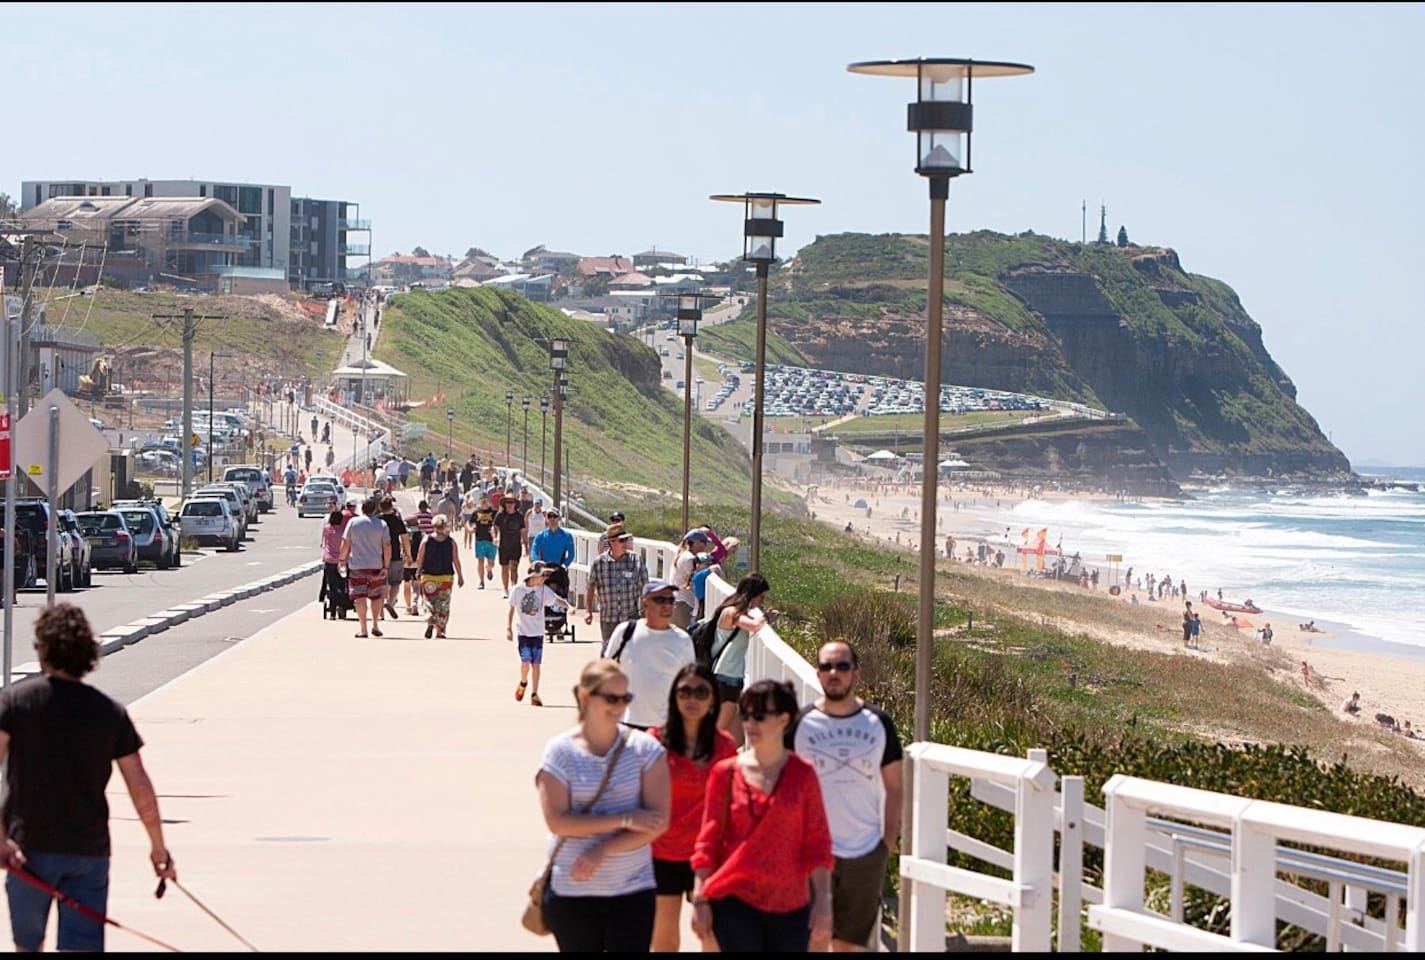 Merewether to Bar Beach